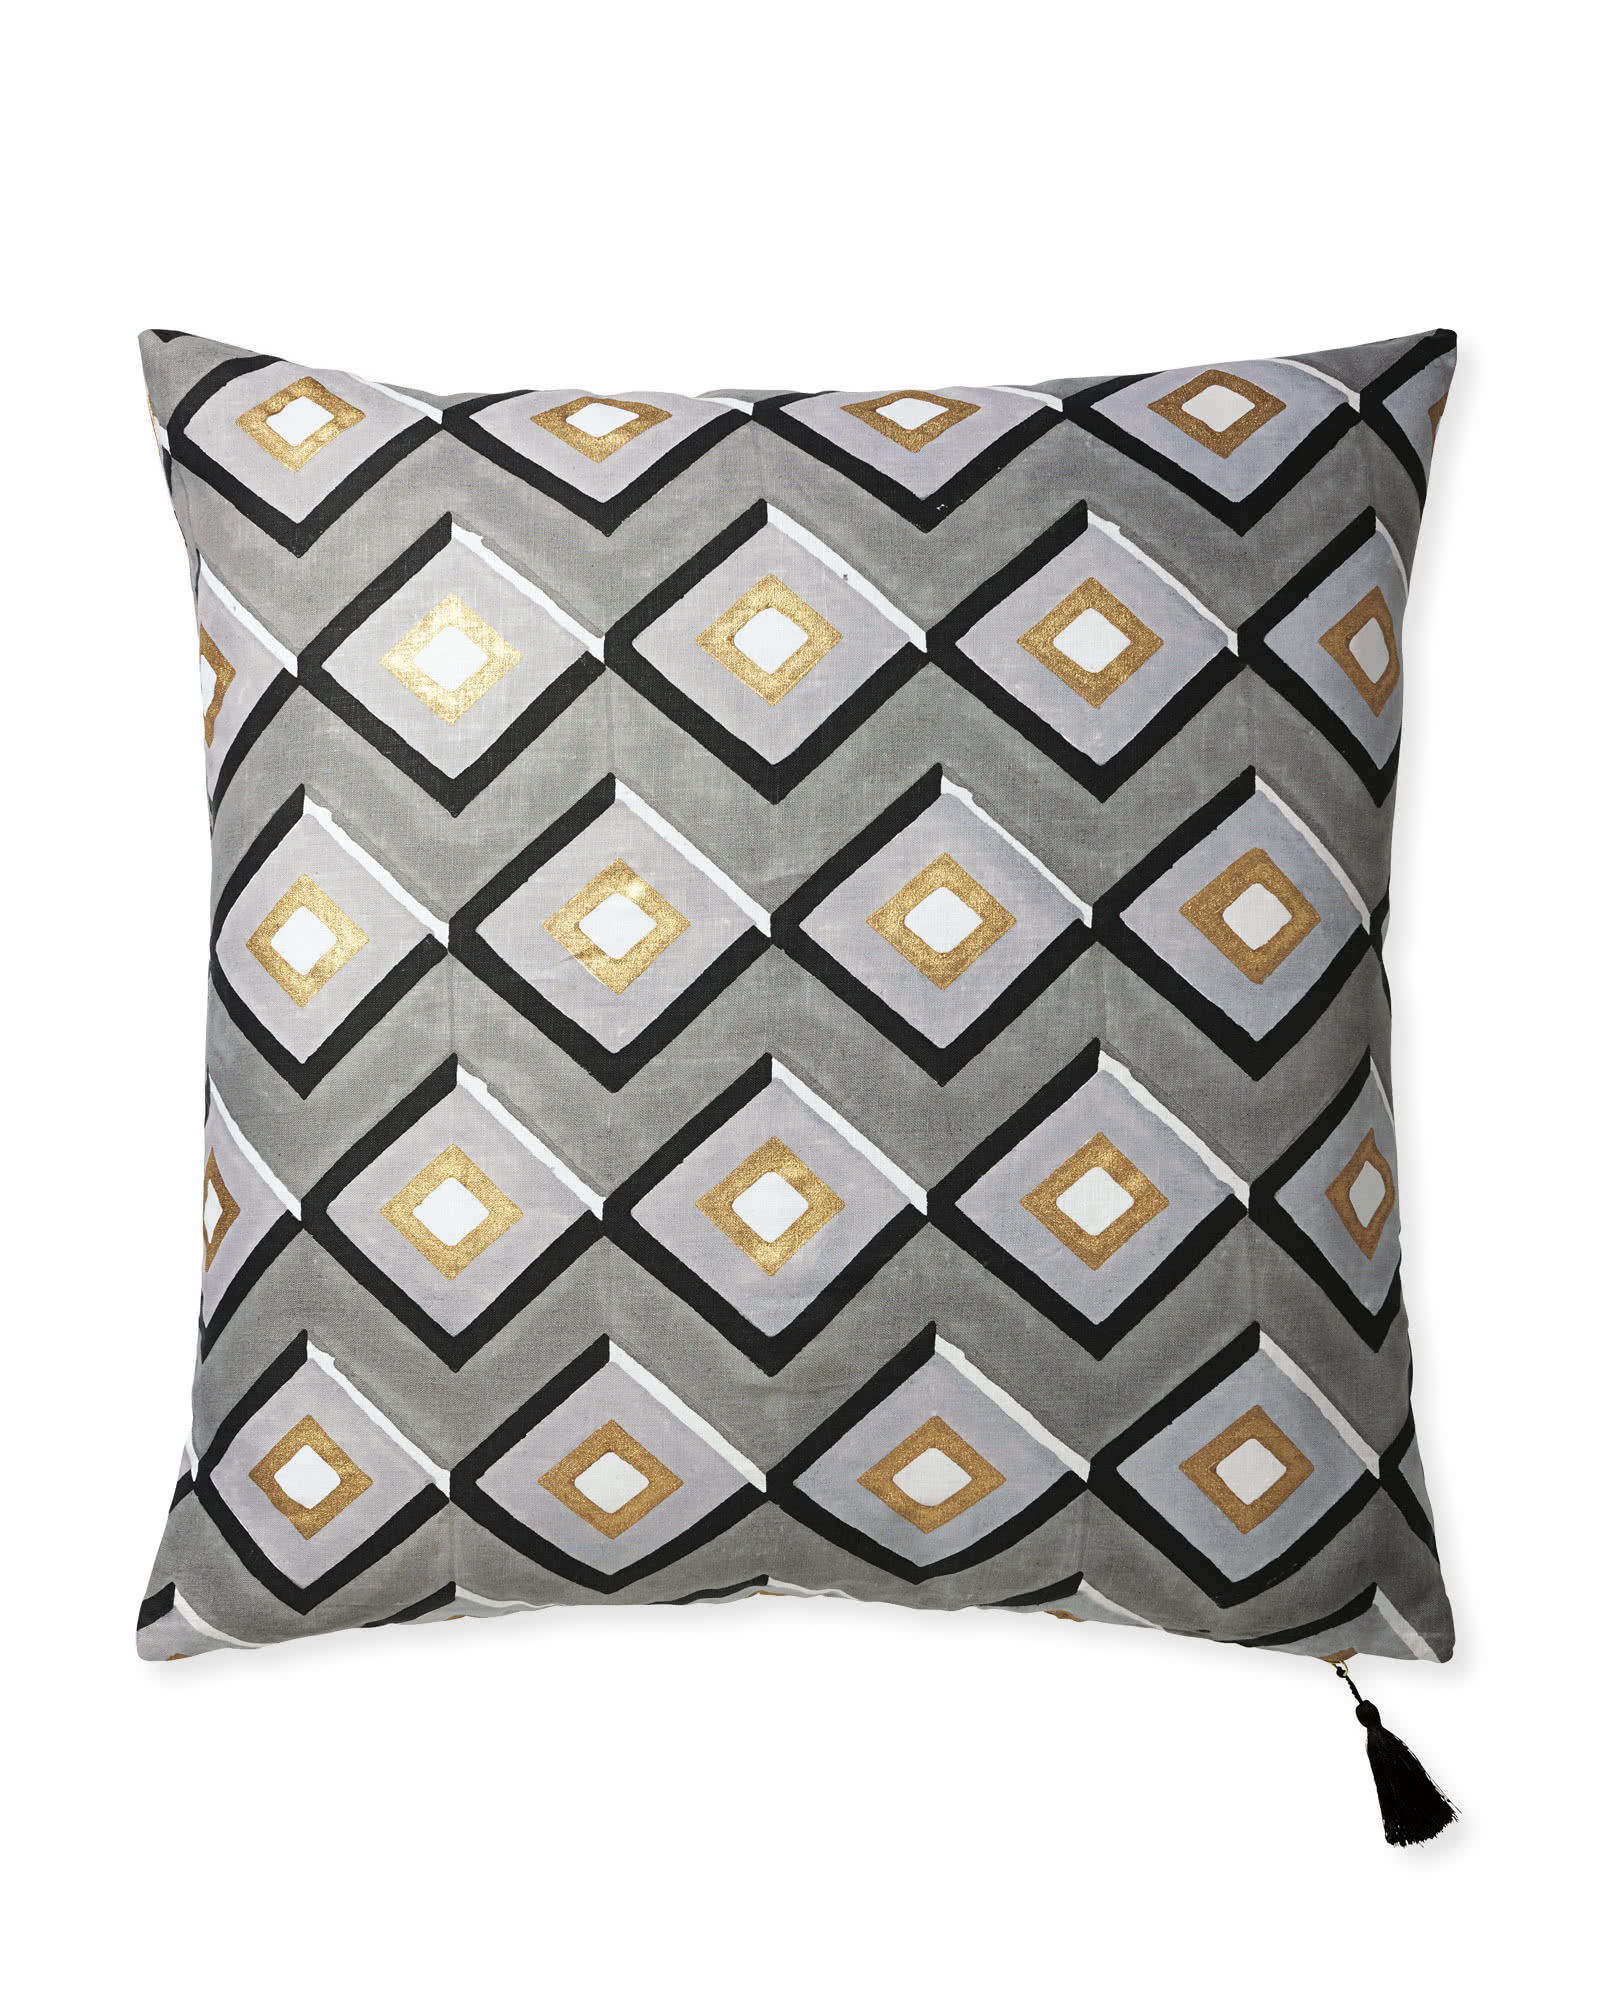 Monterey Block Print Pillow Cover